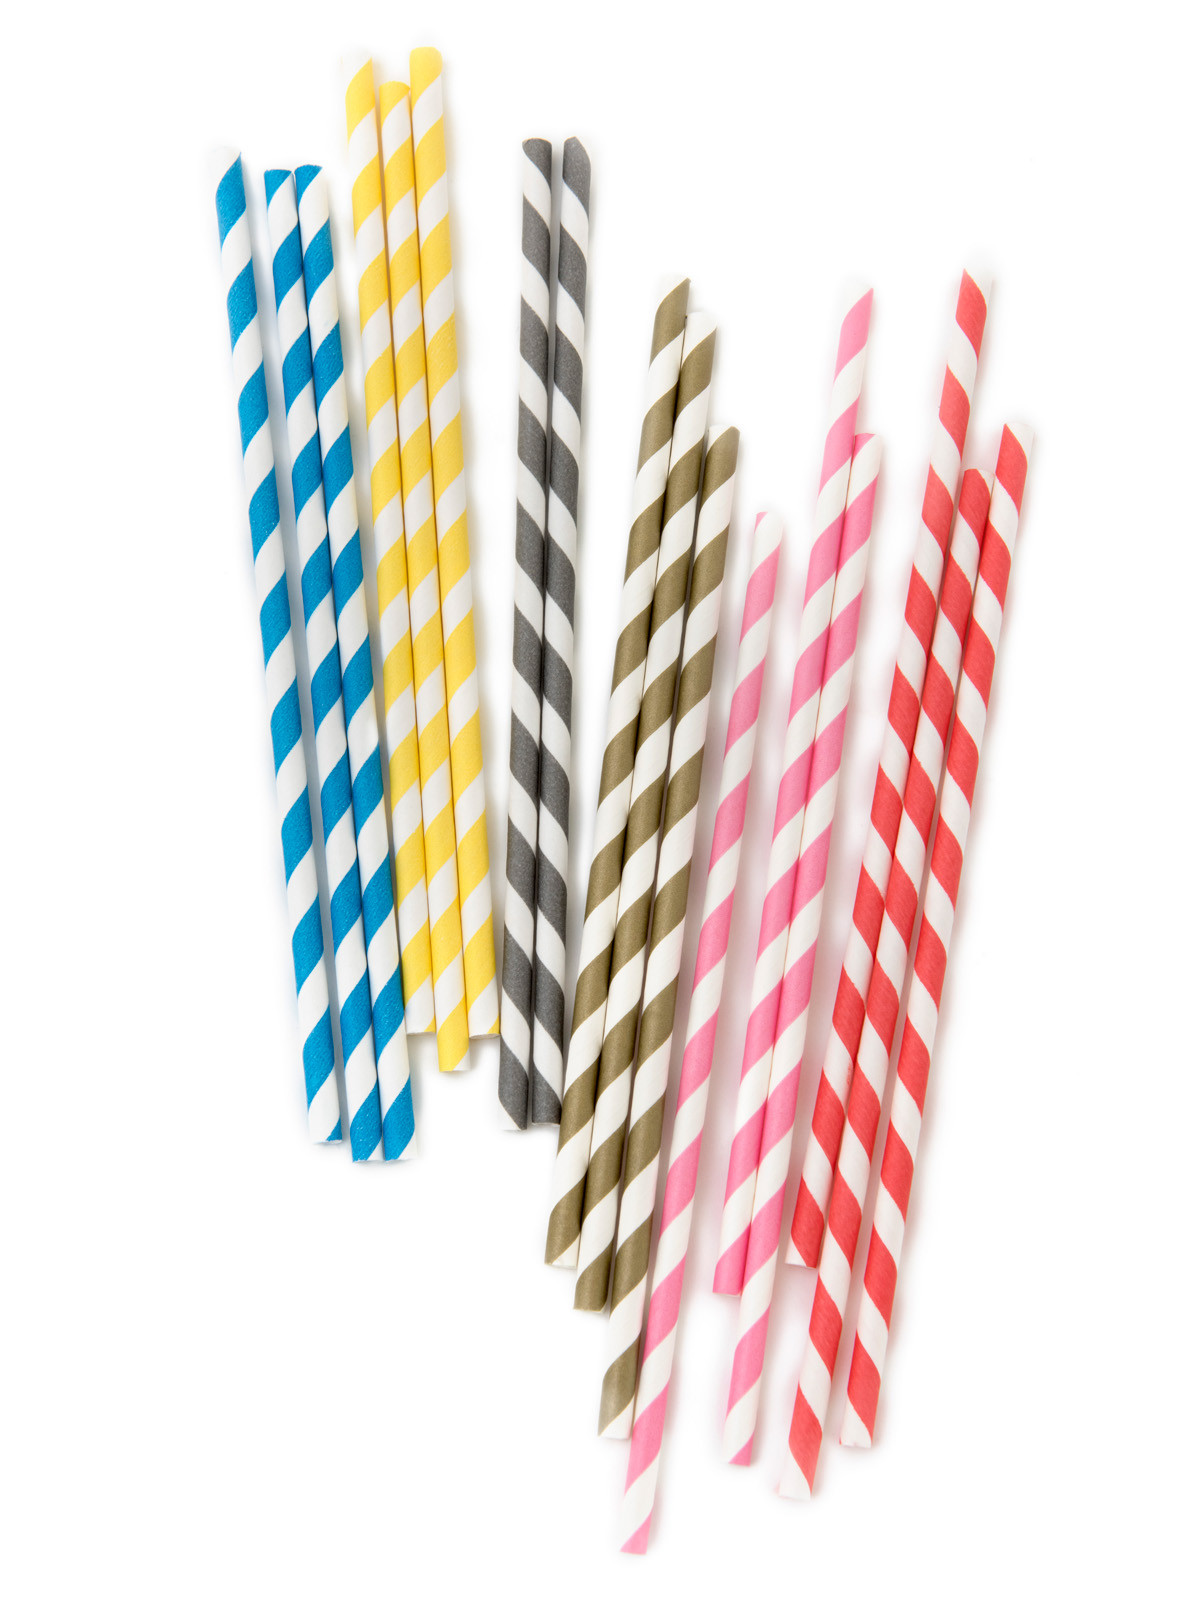 P010 - VARIETY OF STRAWS R1 each